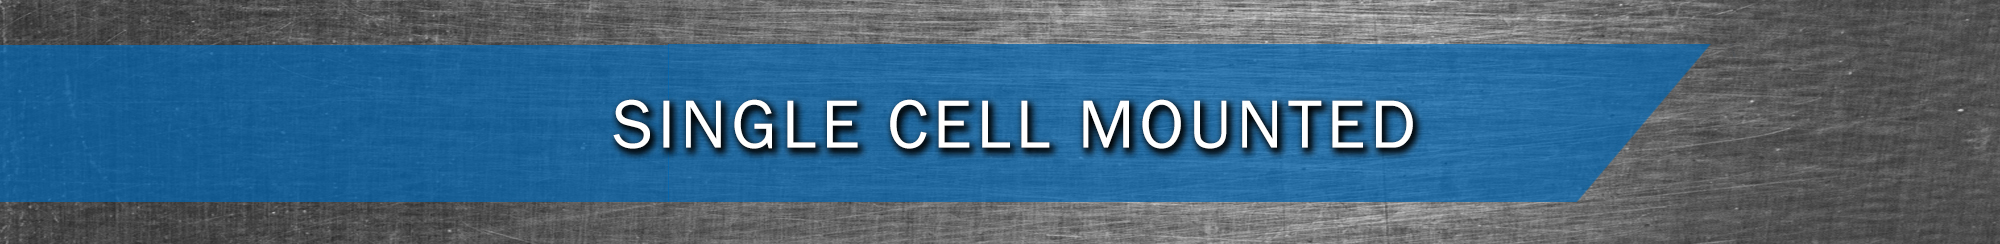 Single Cell Mounted